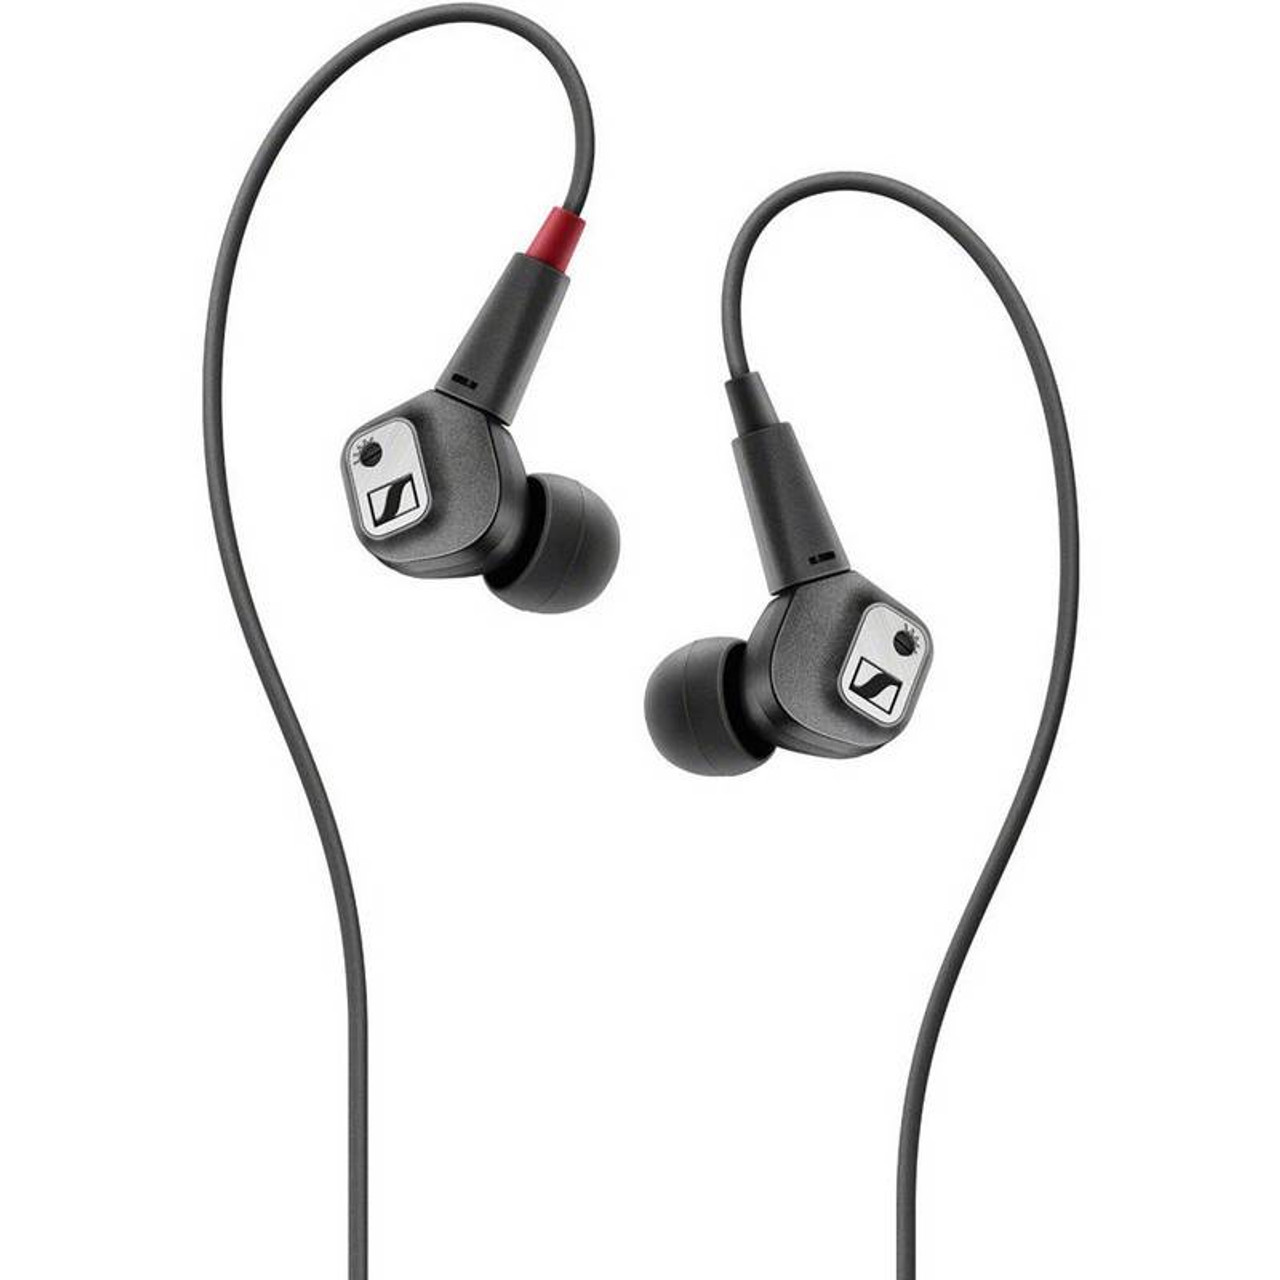 Image for Sennheiser IE 80 S Noise-Isolating In-Ear Headphones CX Computer Superstore